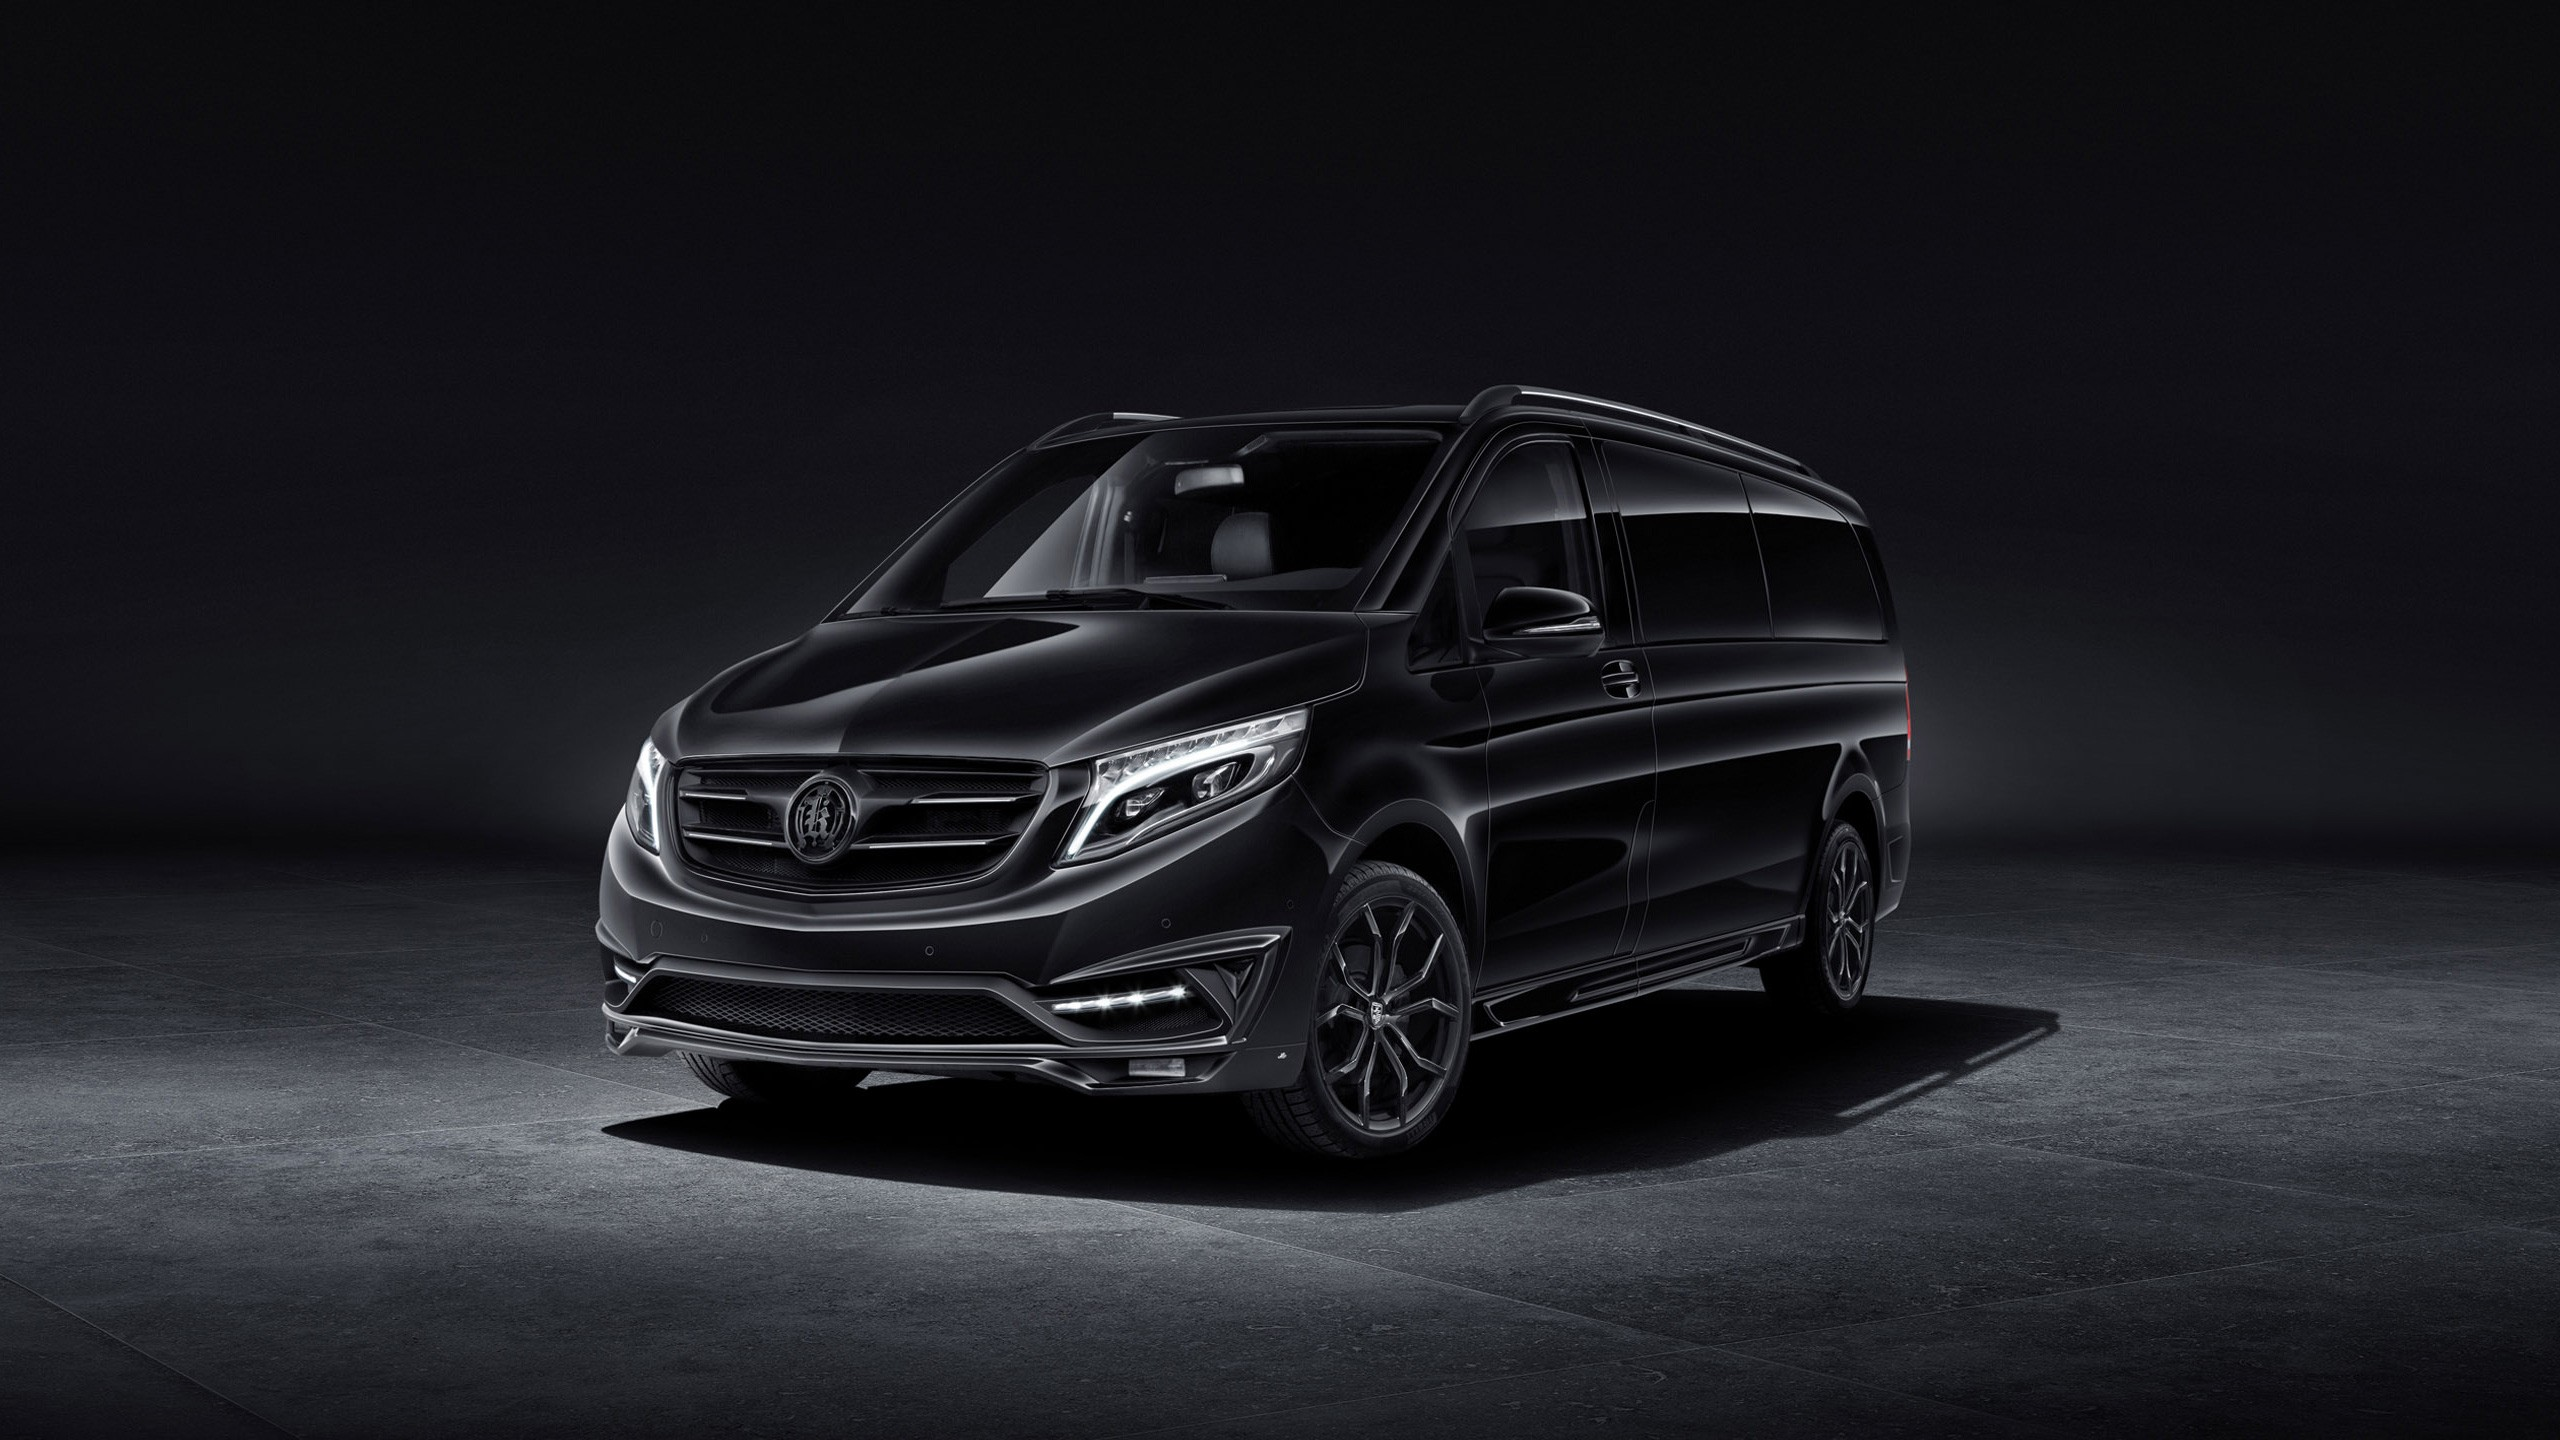 Full Hd Car Wallpapers For Android 2016 Larte Design Mercedes Benz V Class Black Crystal